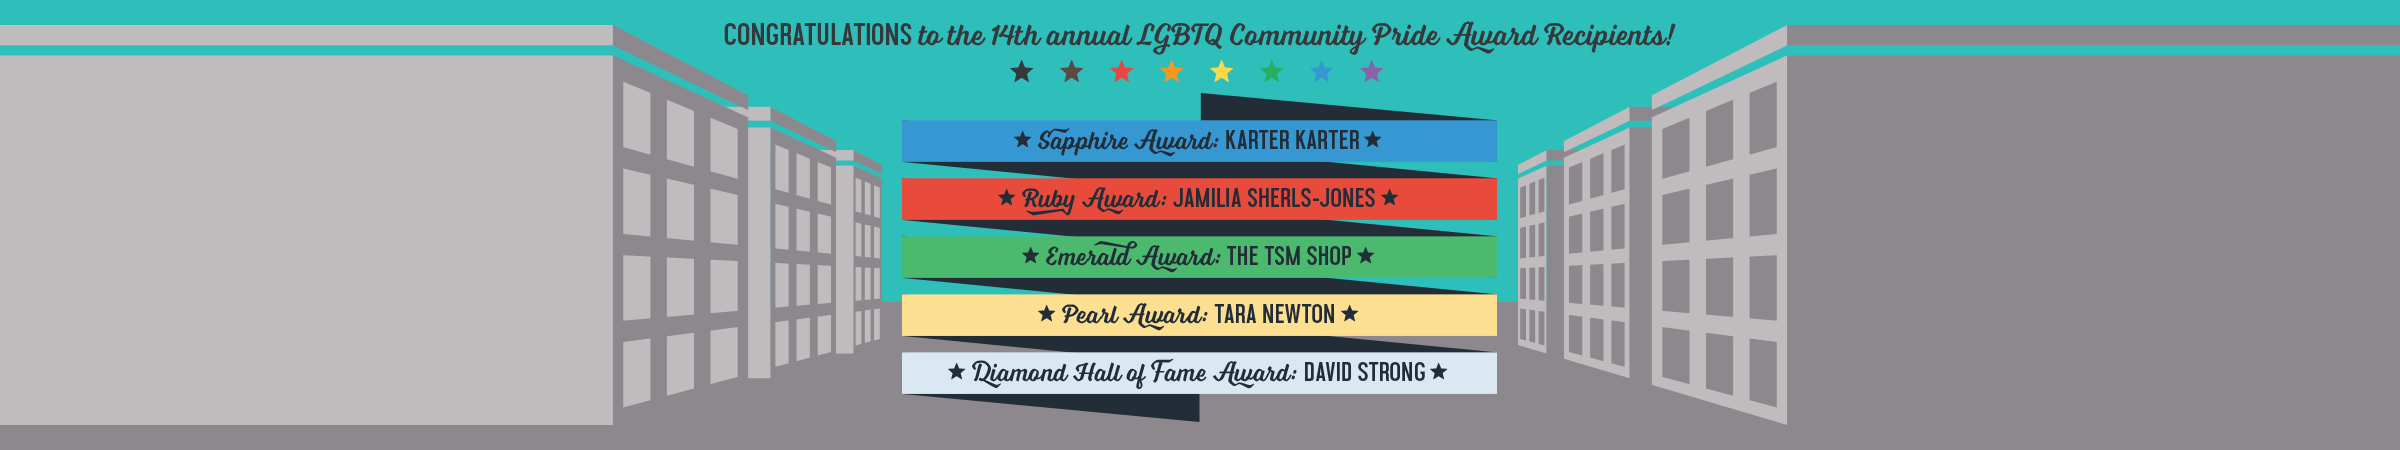 Congratulations to the 14th annual LGBTQ Community Pride Award Recipients! Sapphire Award is awarded to Karter Karter. Ruby Award is awarded to Jamilia Sherls-Jones. Emerald Award is awarded to The TSM Shop. Pearl Award is awarded to Tara Newton. Diamond Hall of Fame Award is awarded to David Strong.